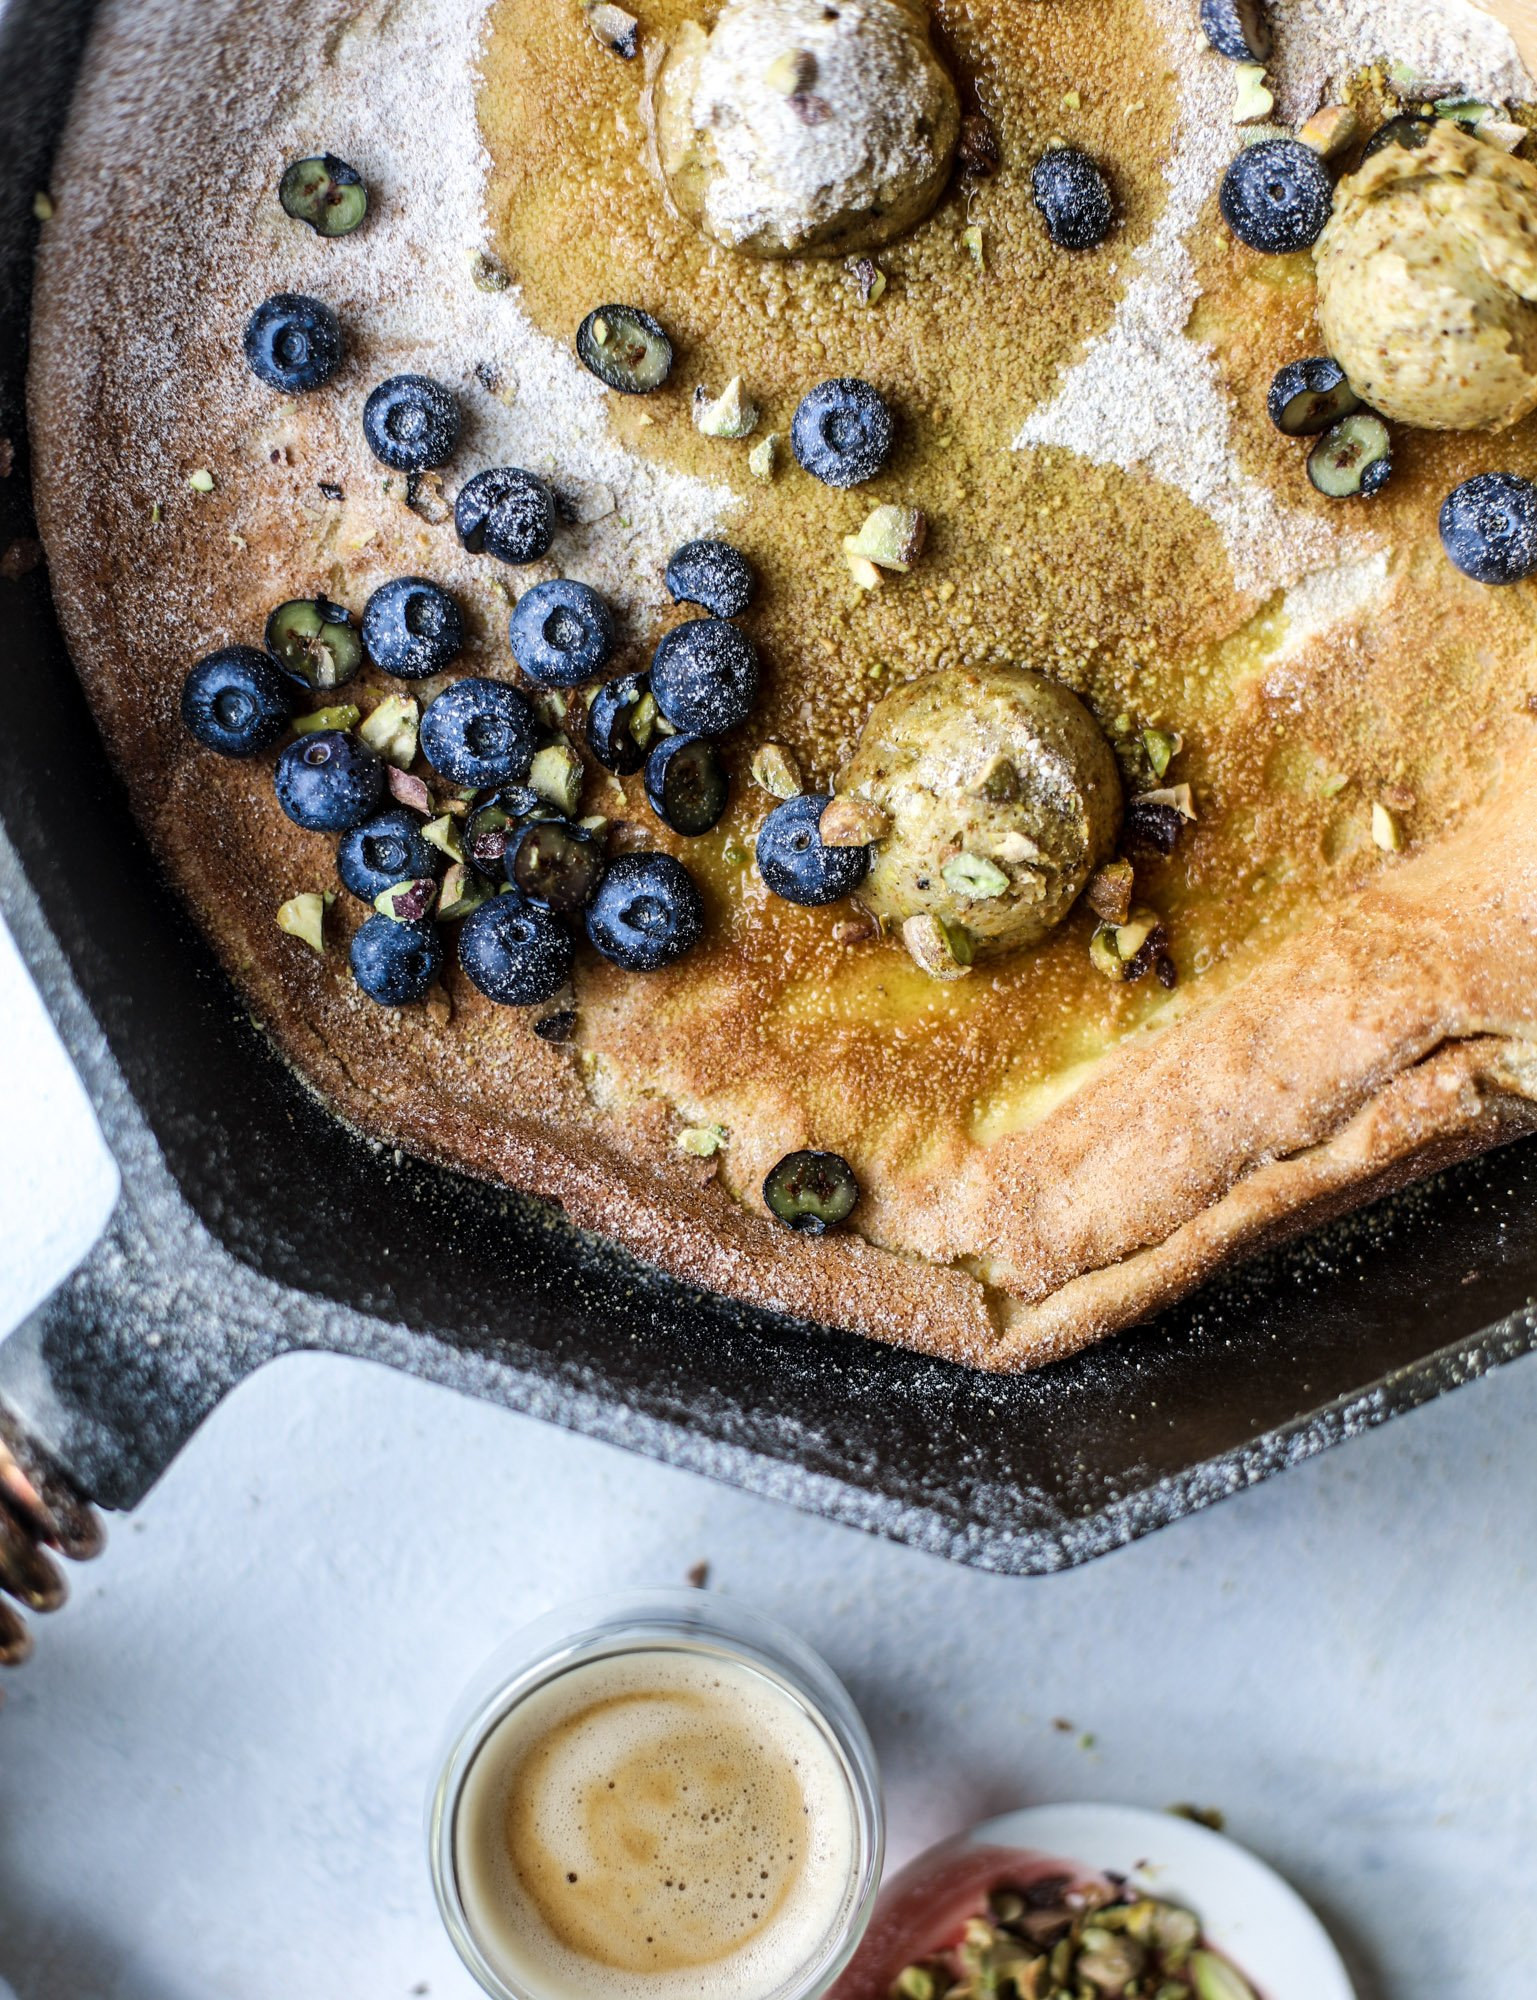 This incredible dutch baby recipe is fluffy and light and perfect for breakfast! It's sprinkled with pistachio sugar and served with pistachio butter and fresh blueberries. It's super easy, simple and always a hit! I howsweeteats.com #dutch #baby #pistachio #blueberry #breakfast